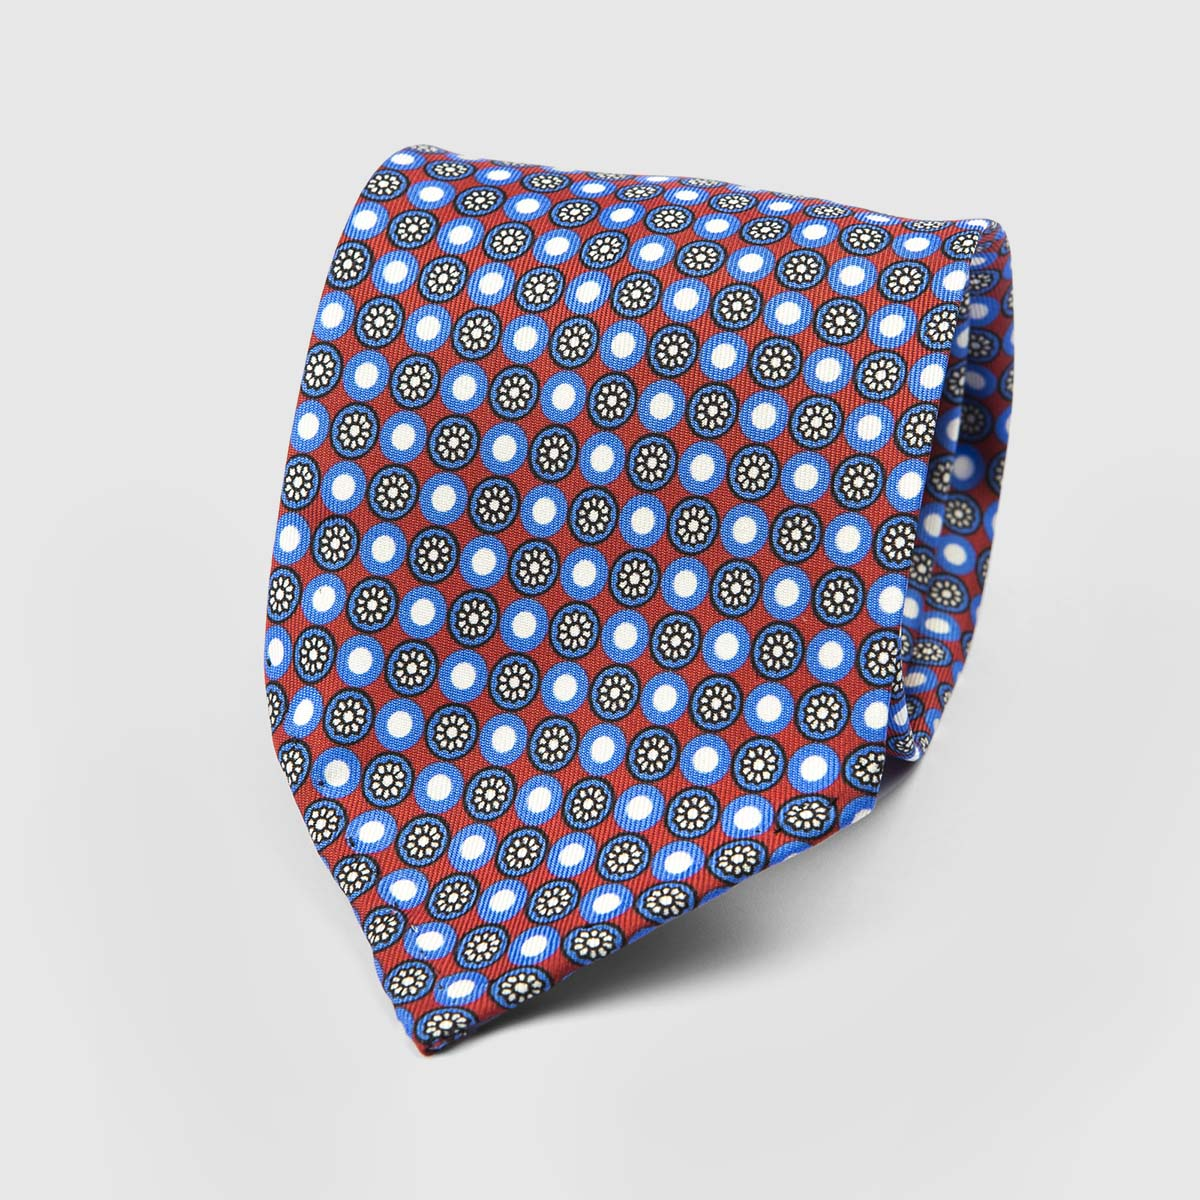 Fleur Seven Fold Necktie in Red, Azure, and White